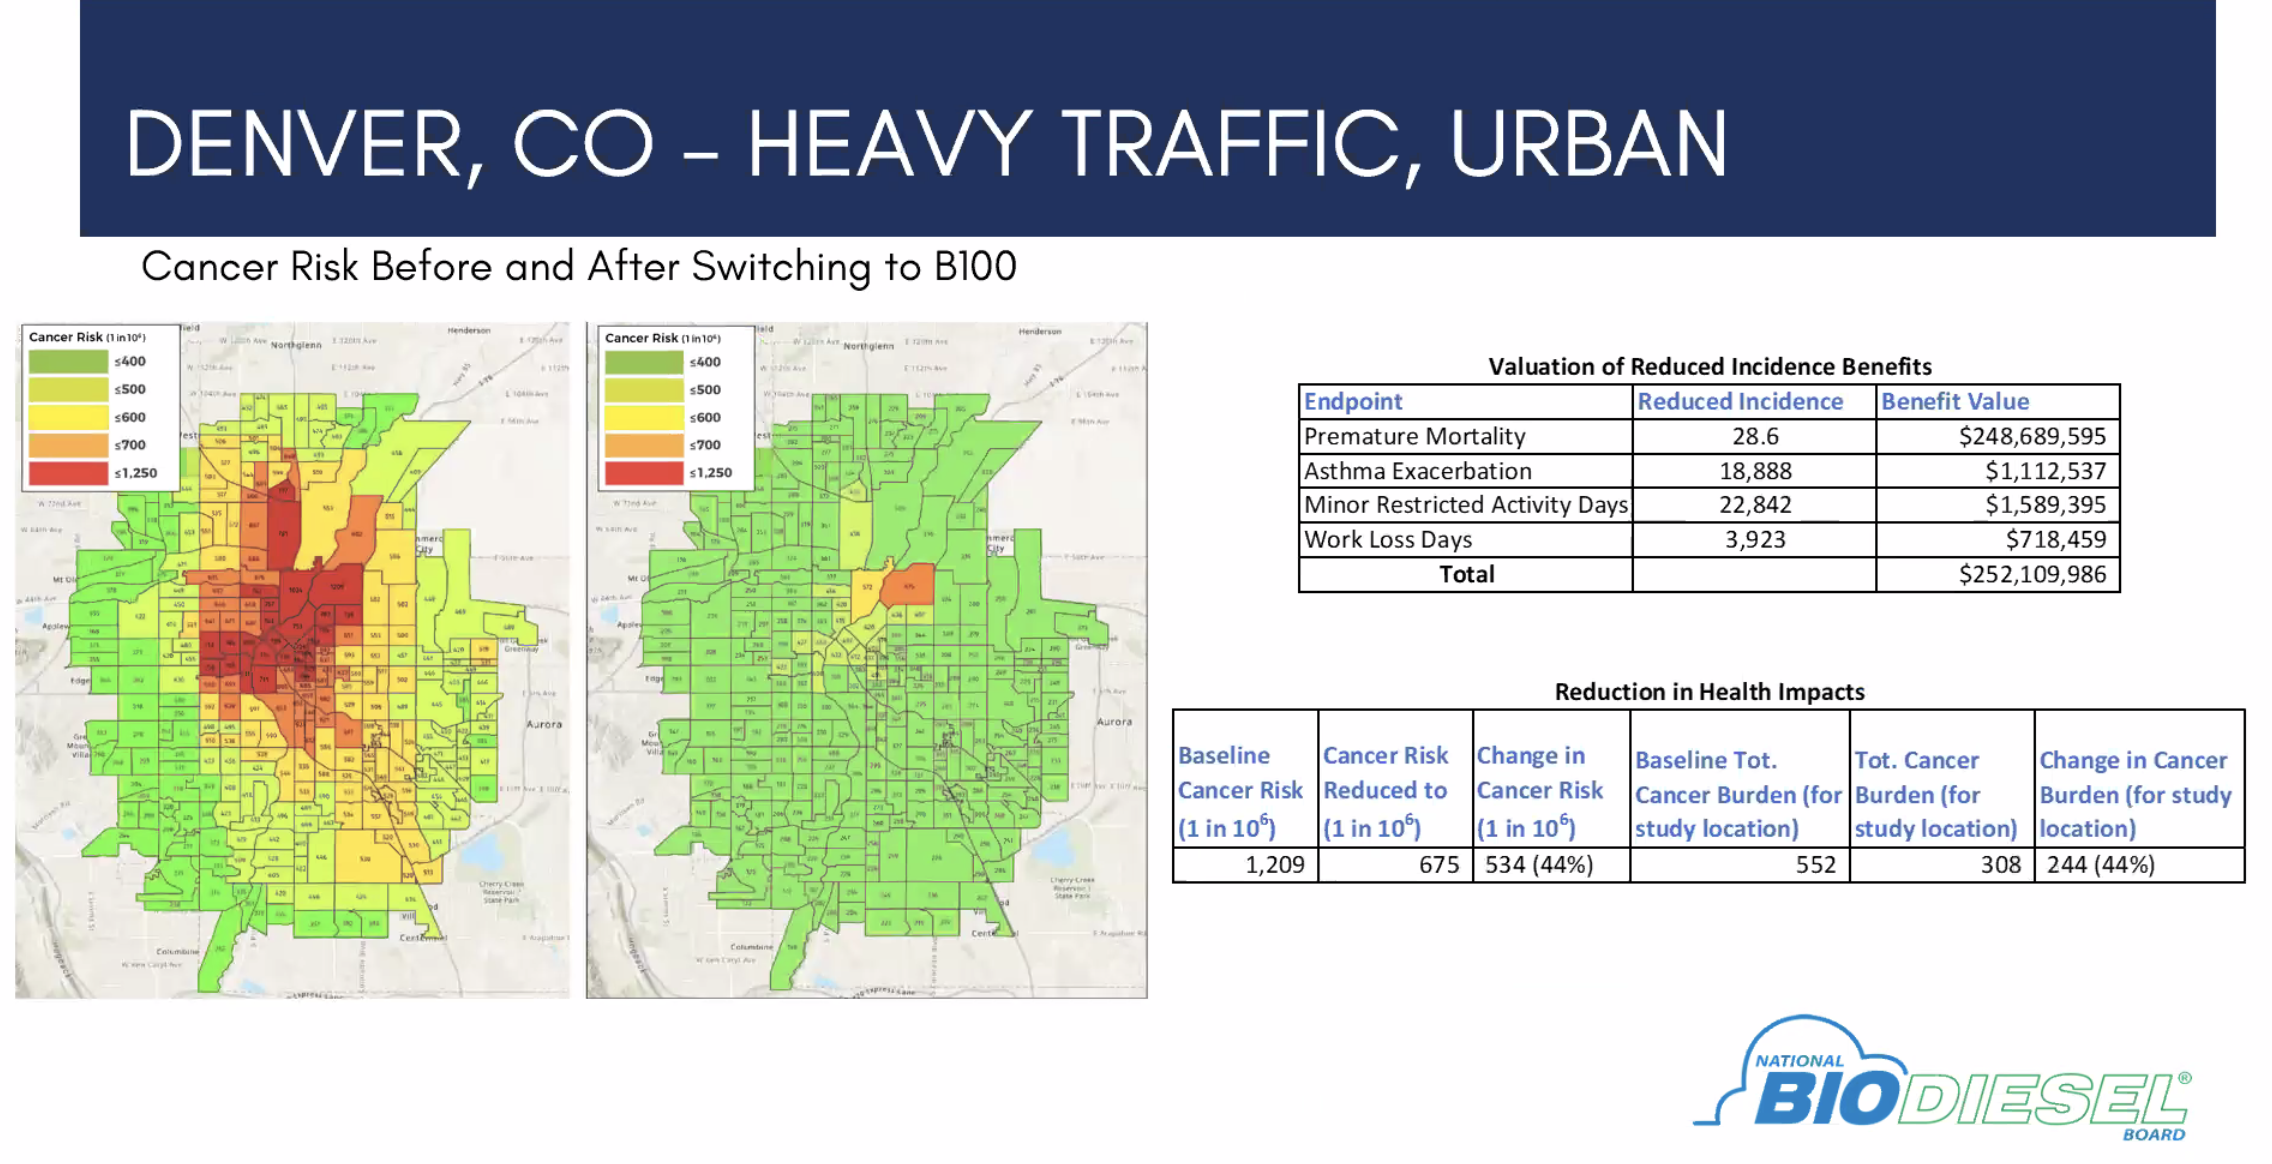 How Denver, Colorado, neighborhood would be impacted by switching to B100.